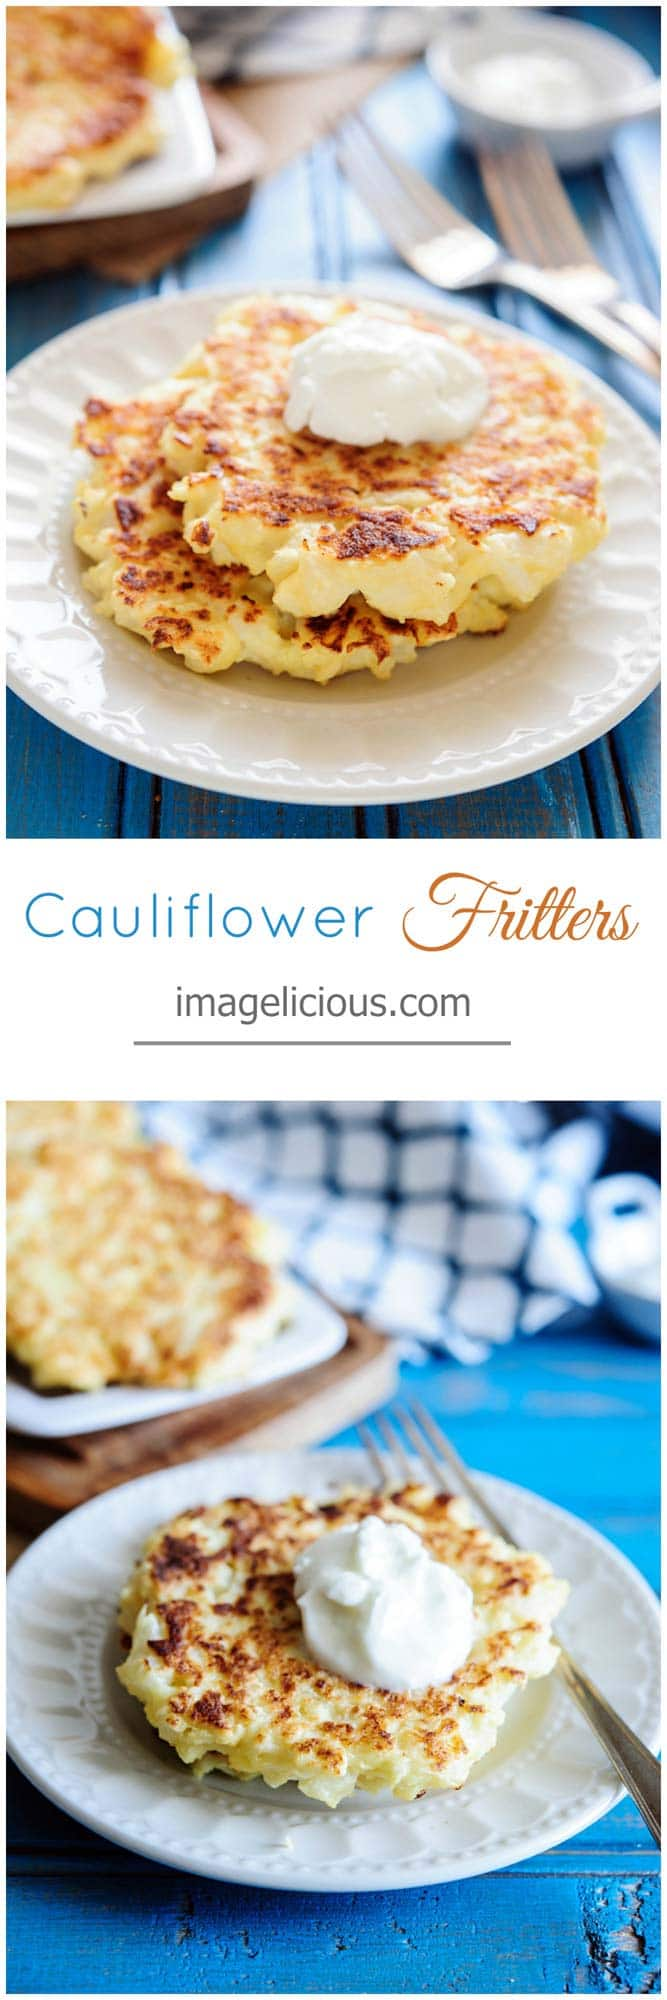 These Cauliflower Fritters are an easy and light vegetarian side dish. They taste delicious with some greek yogurt and would be perfect with mixed greens or poached egg | Imagelicious